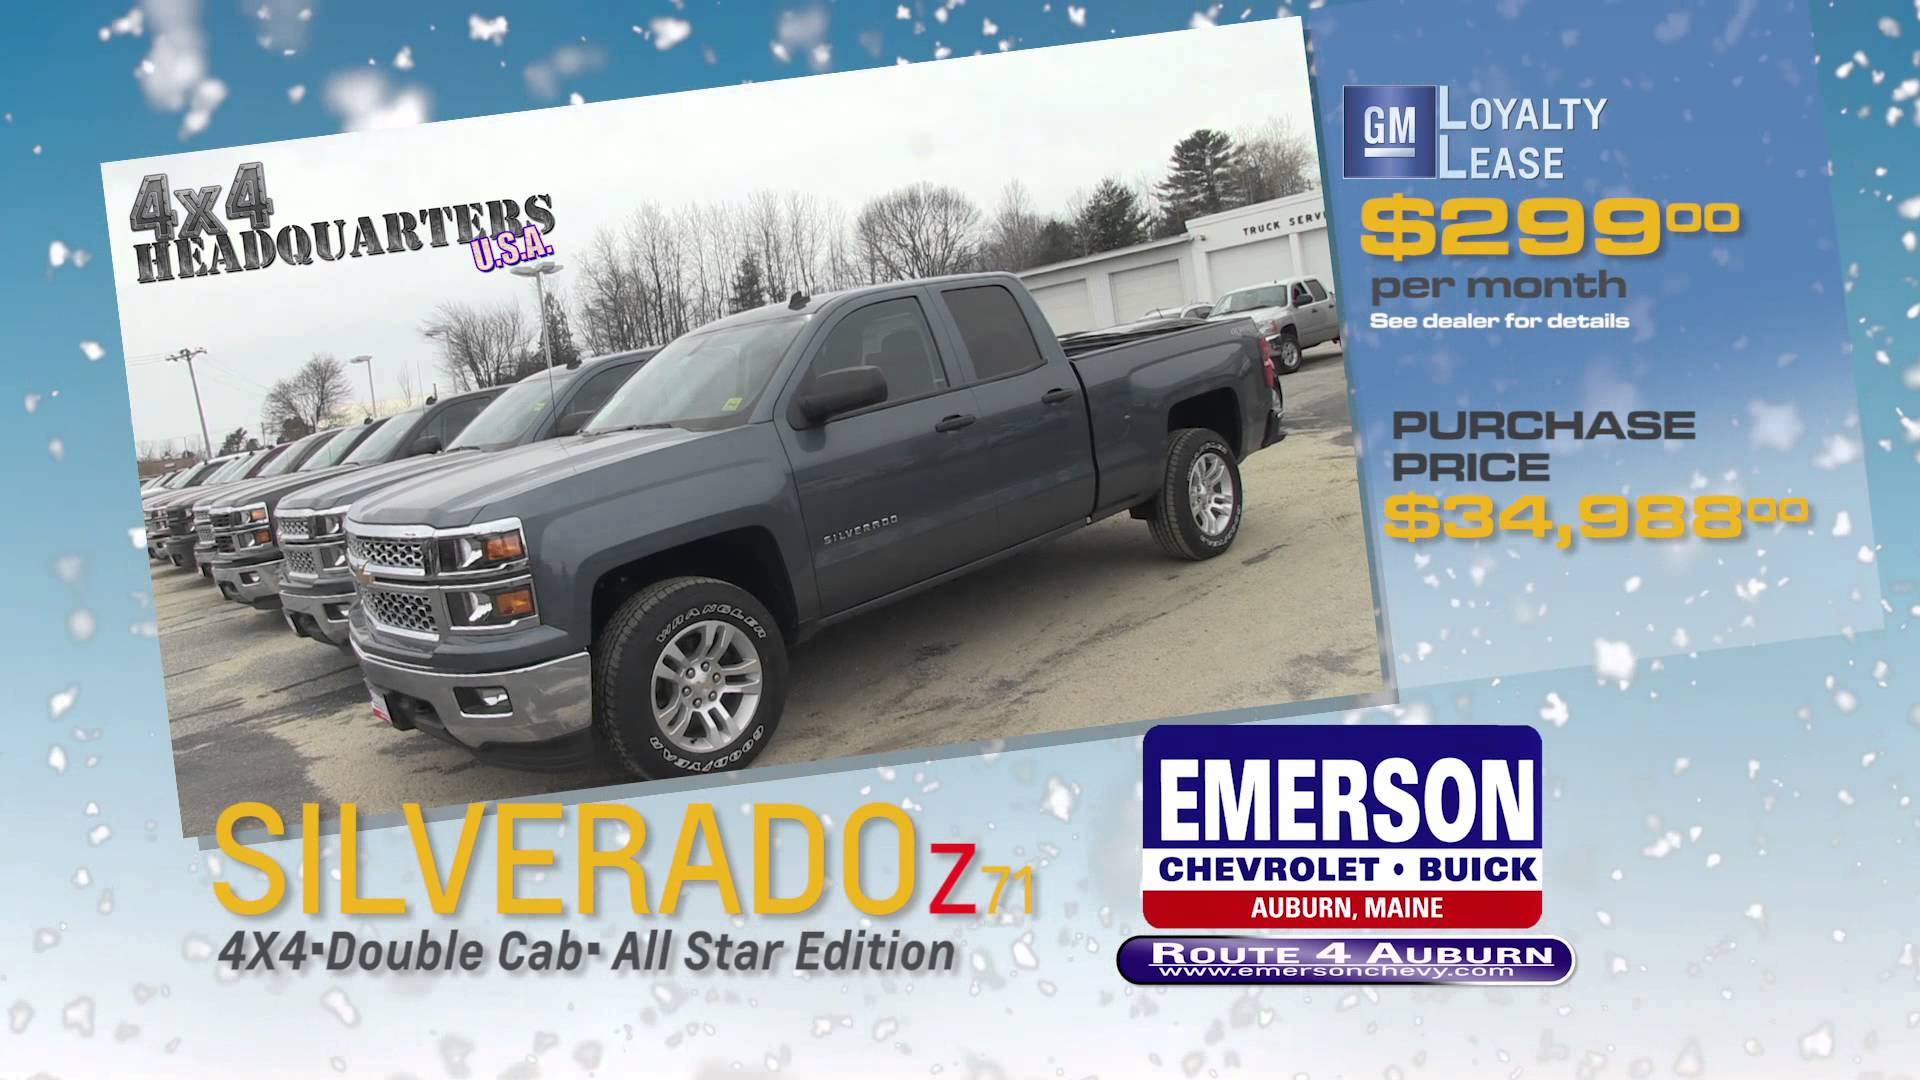 EMERSON CHEVY_4X4 HEADQUARTERS 115_RMVP236_HD